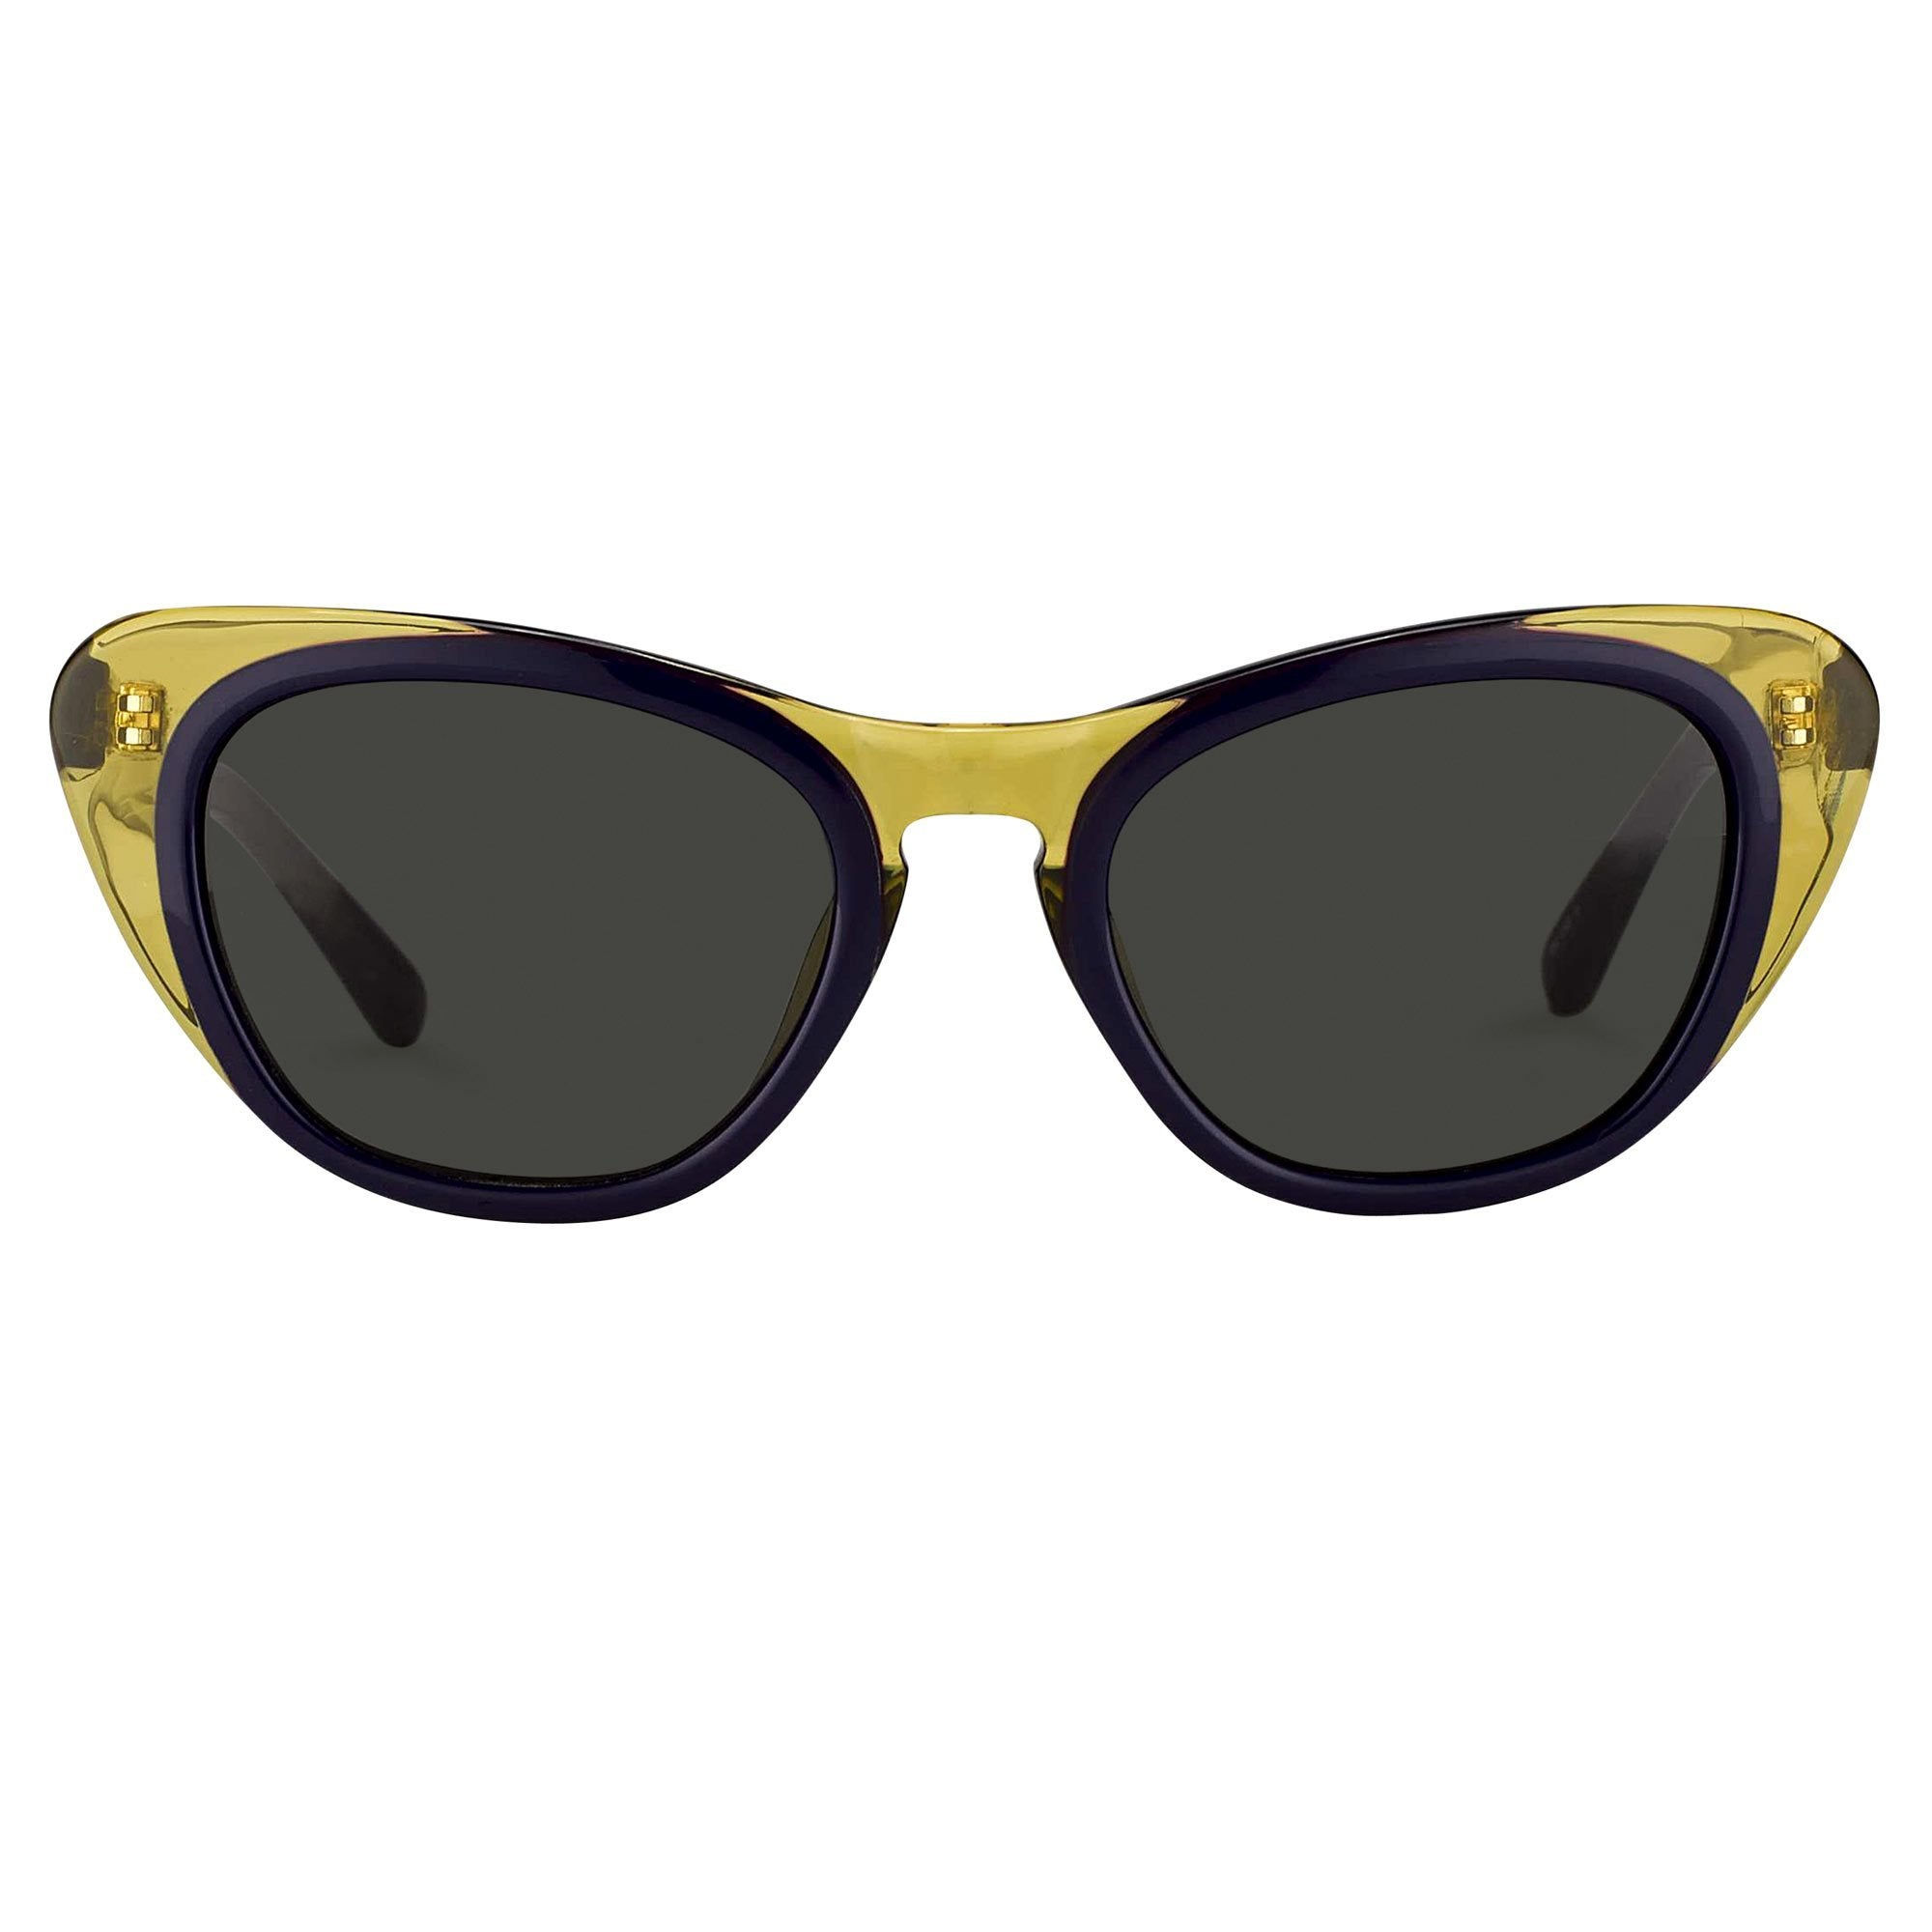 Erdem Women Sunglasses Cat Eye Transparent Ochre Purple with Grey Lenses Category 3 EDM18C2SUN - Watches & Crystals